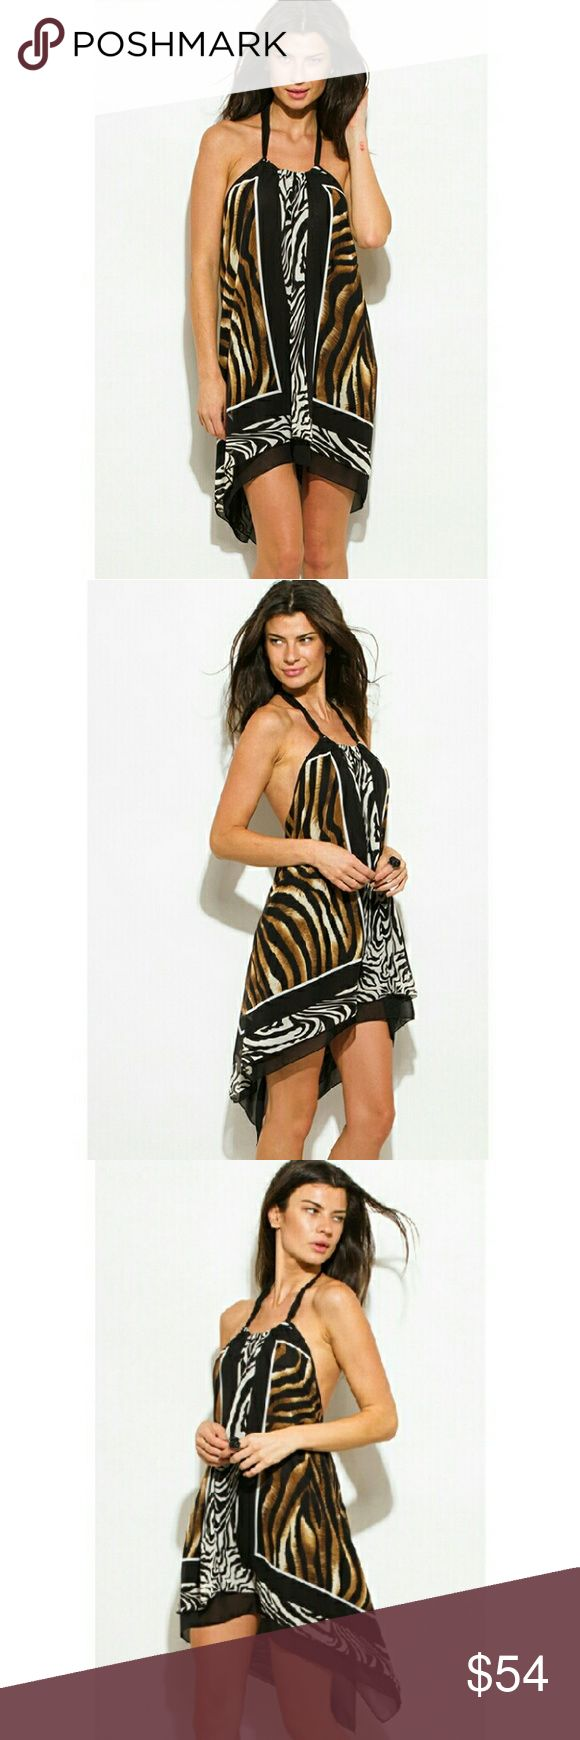 Animal Print Mini Dress This lightweight Handkerchief style Animal Print Mini Dress, features an open back, flowing design with a relaxed fit. Lined.Made of 100% Polyester.  Available in Small Medium Large  Please allow up to 7 business days for processing. Brand New With Tags!  Free Gift With Purchase! BOUTIQUE Dresses Mini